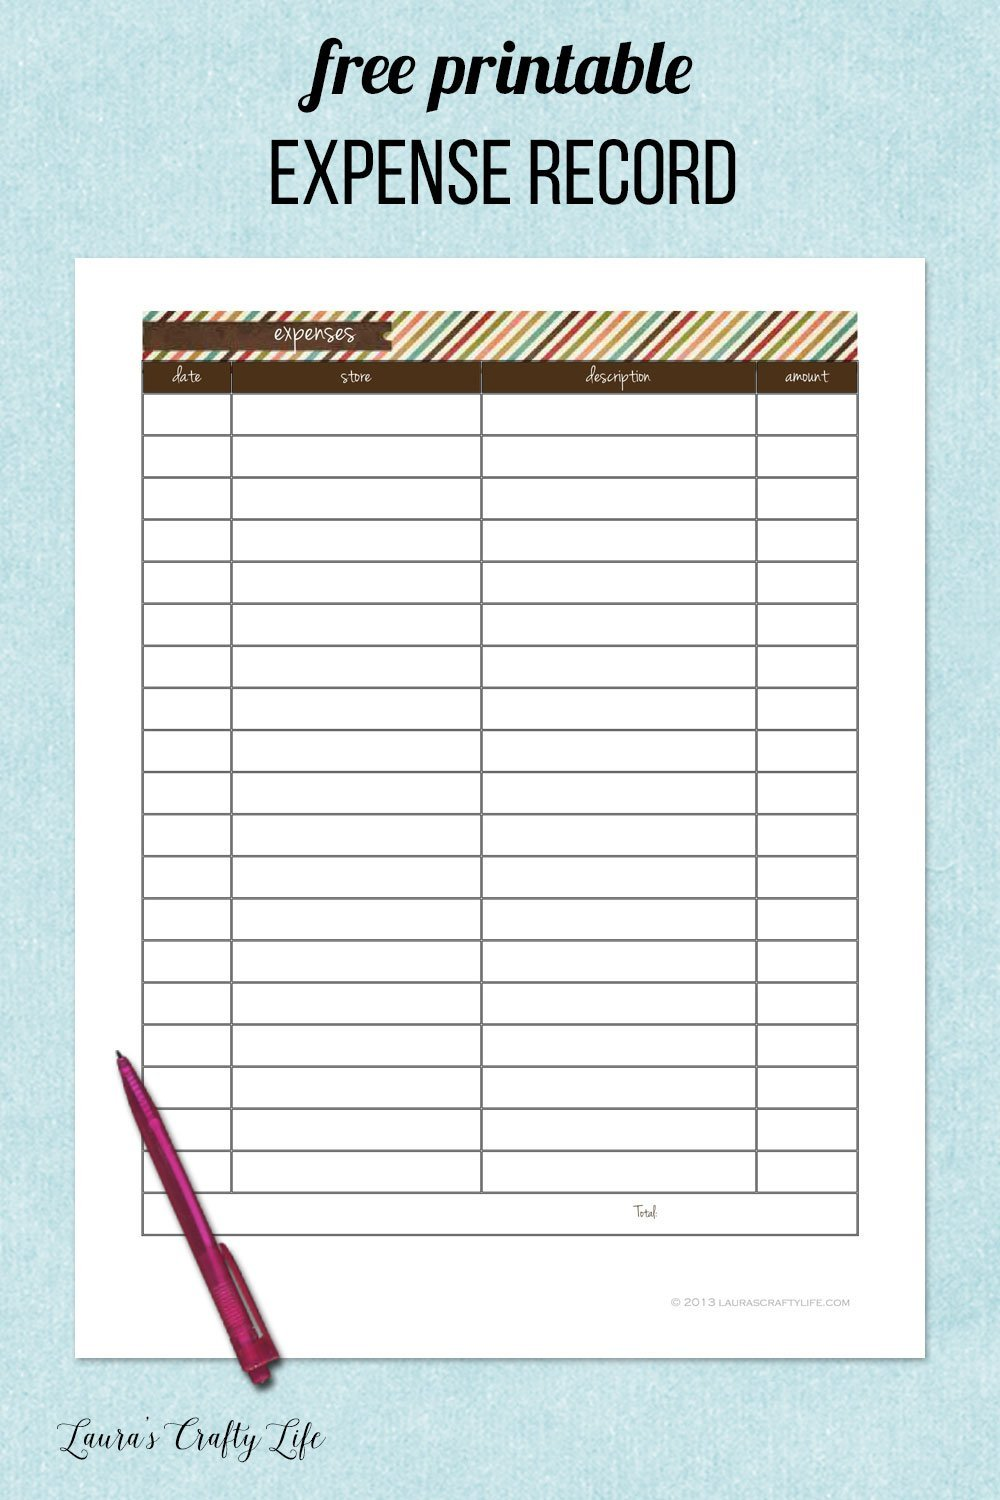 free printable expense record